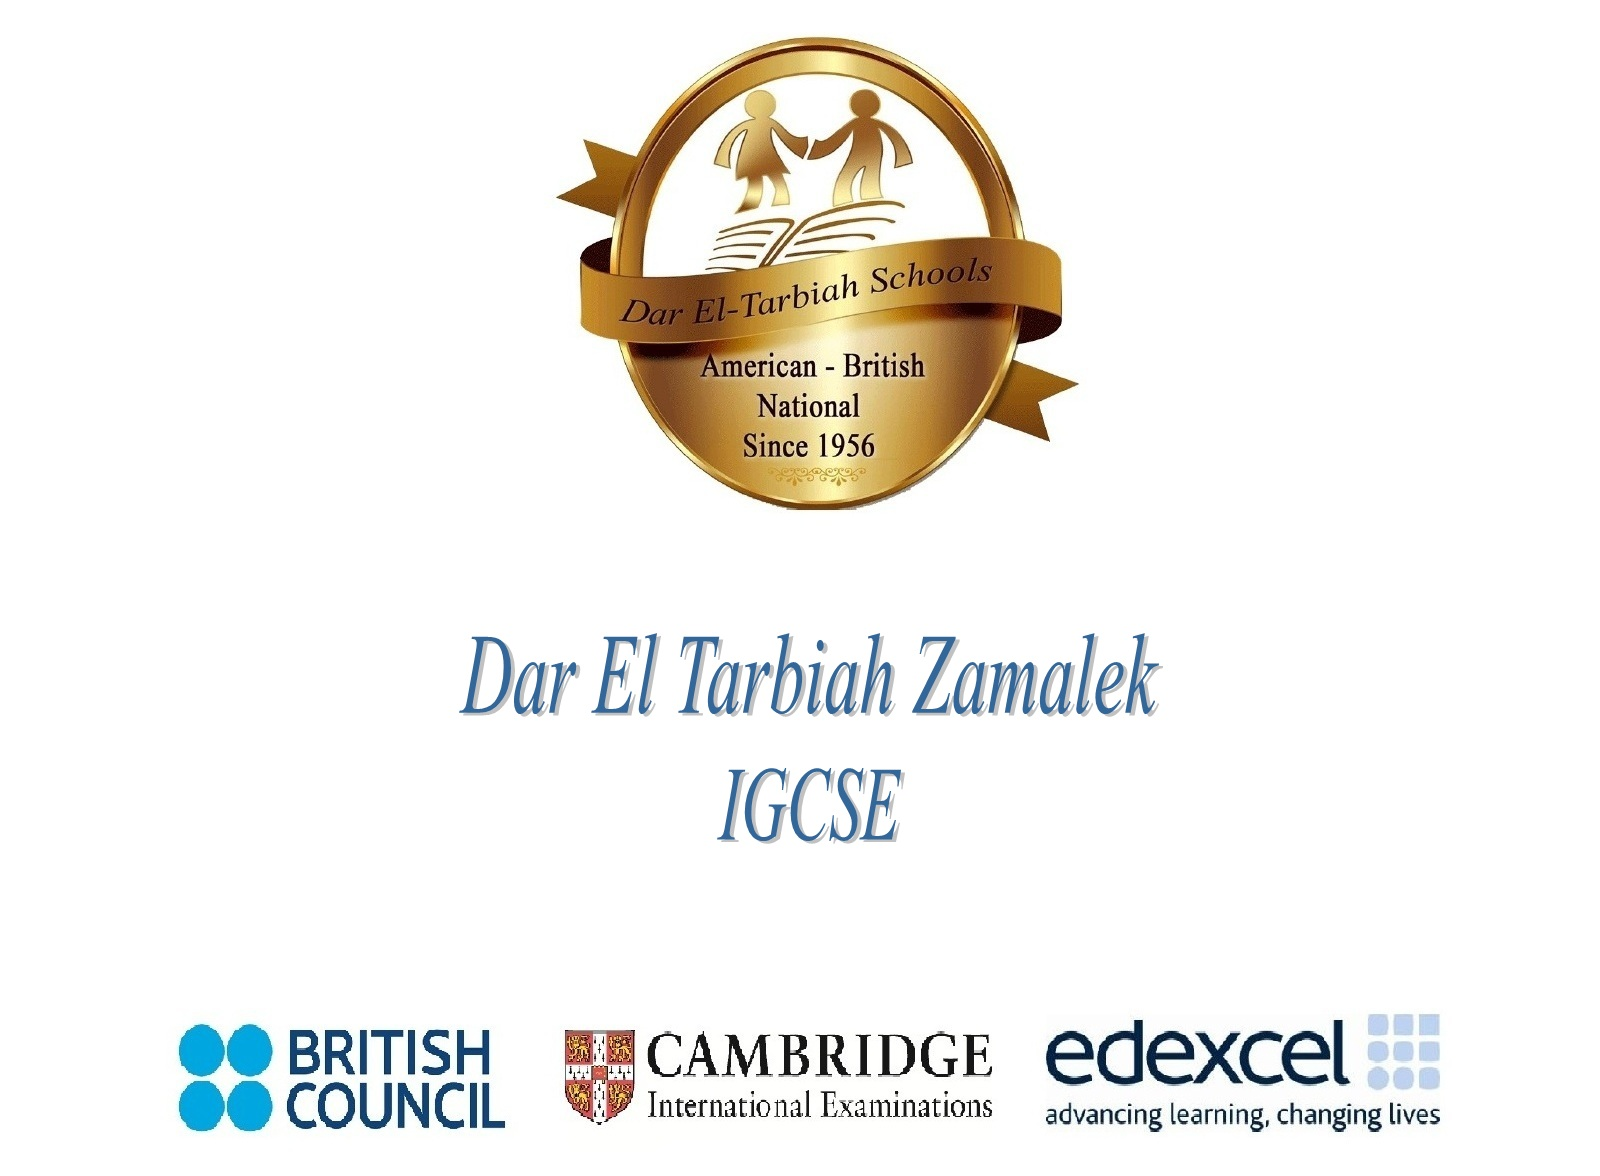 Dar El Tarbiah IG Zamalek - Quality Education